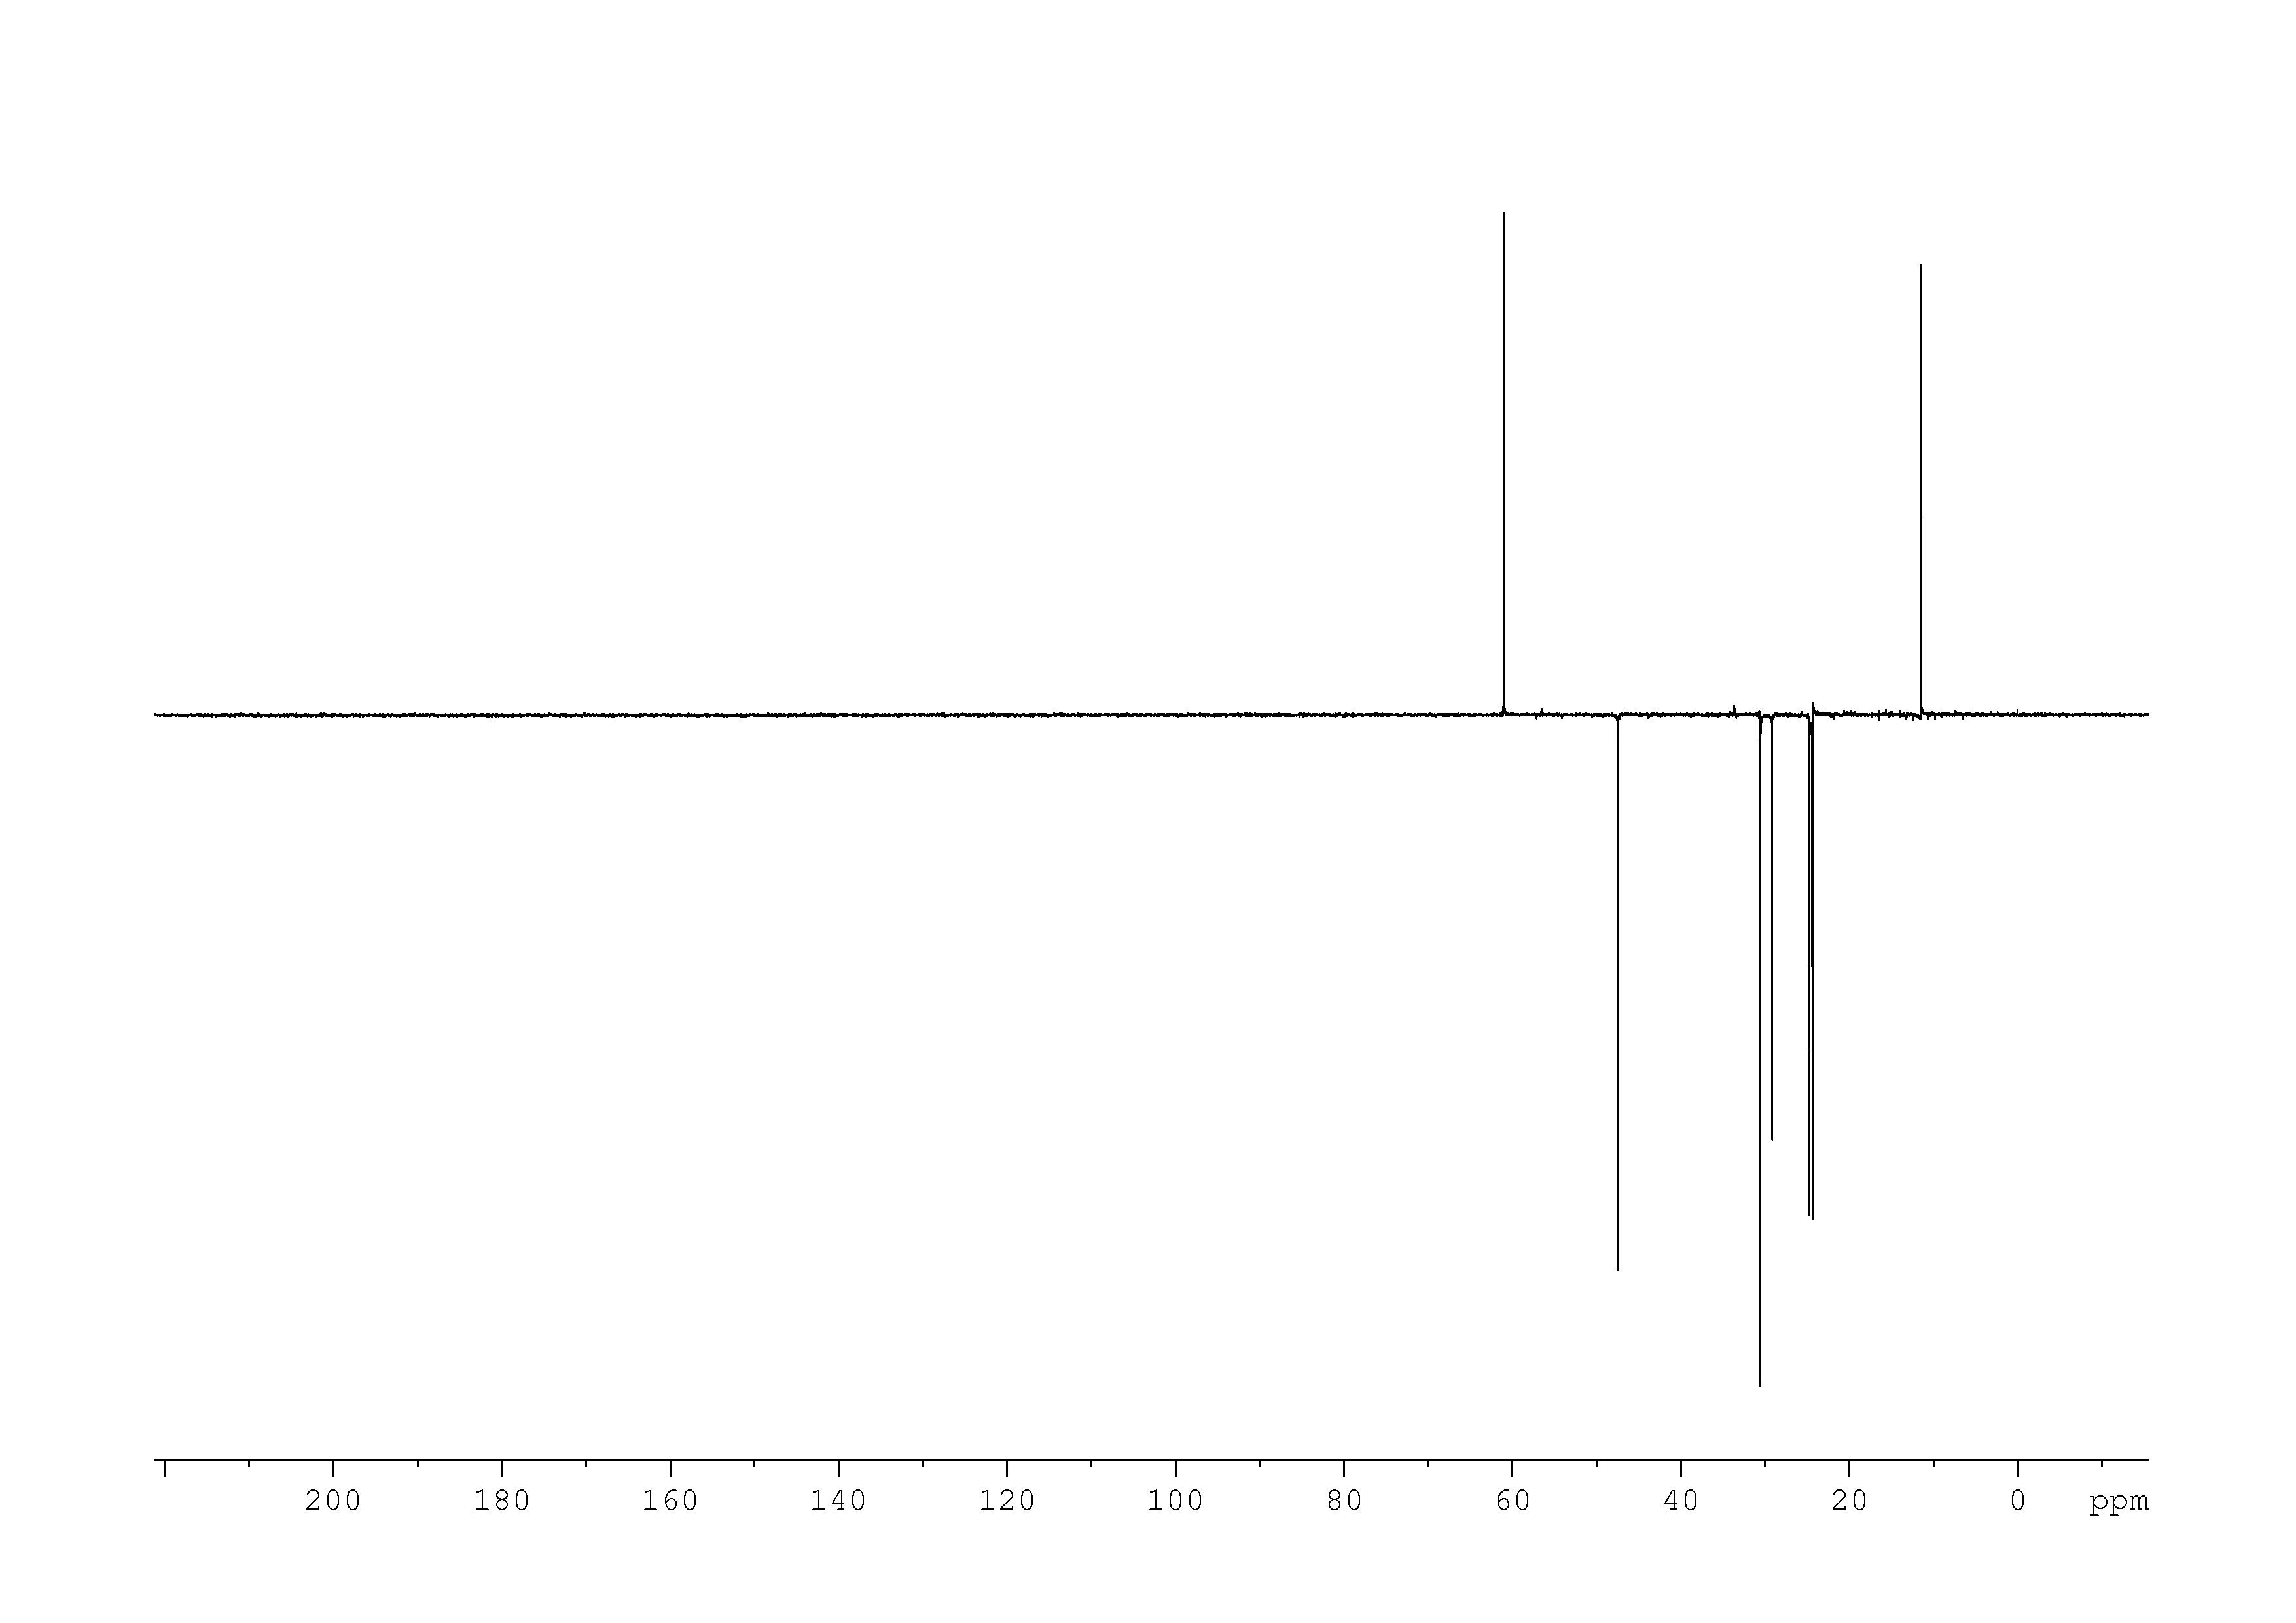 1D DEPT135, 7.4 spectrum for 2-ethylpiperidine